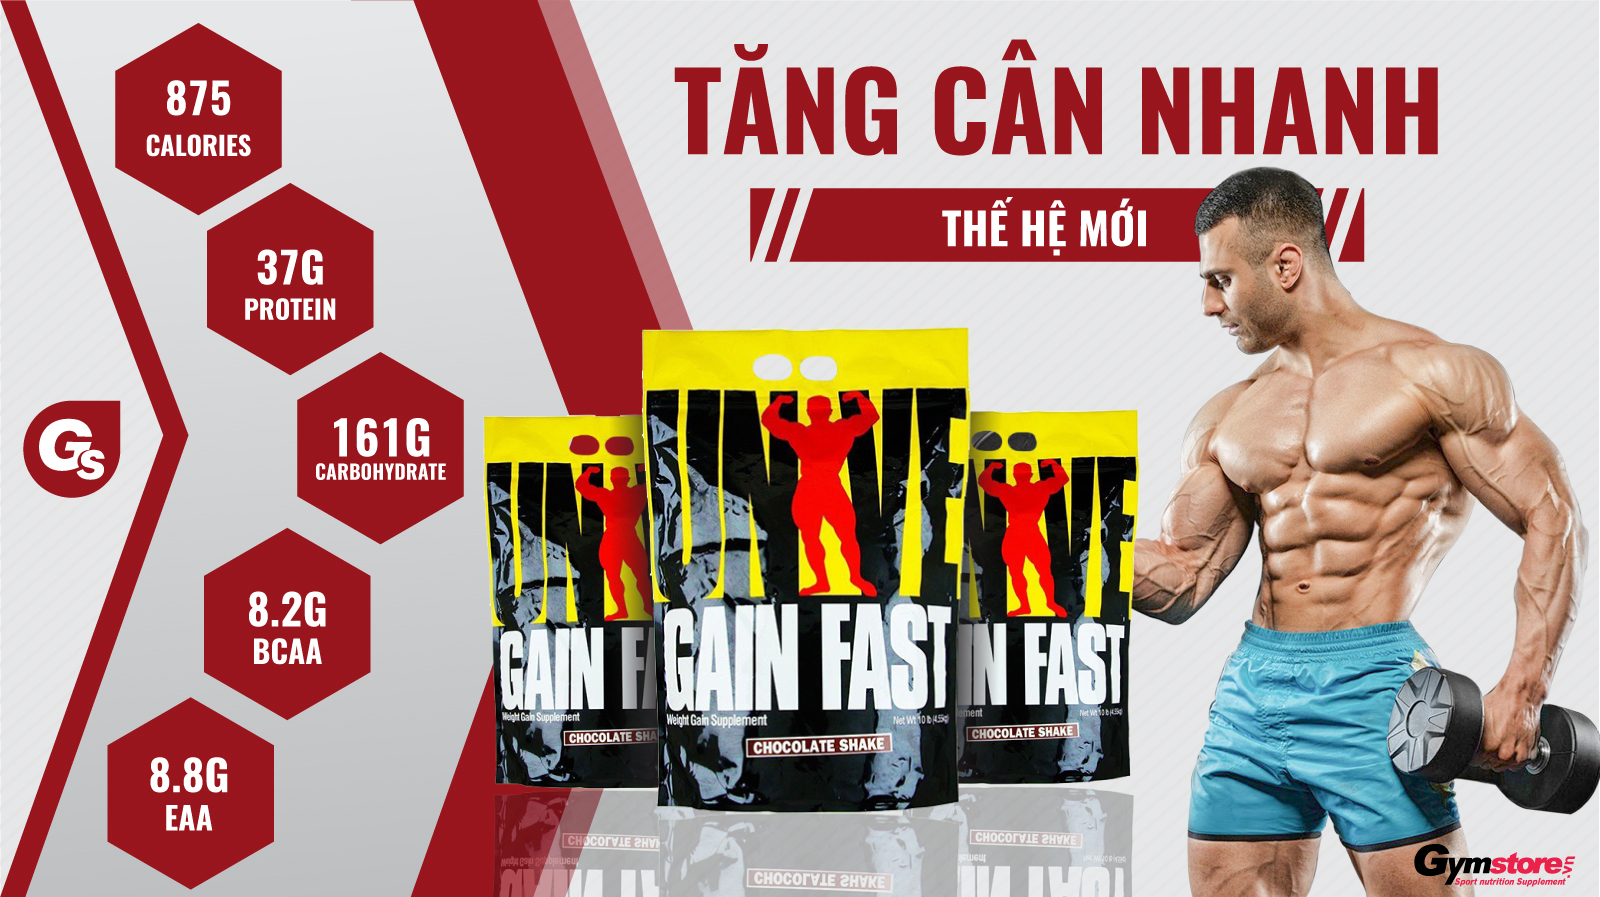 Universal-Gain-Fast-ho-tro-tang-can-toi-da-gymstore